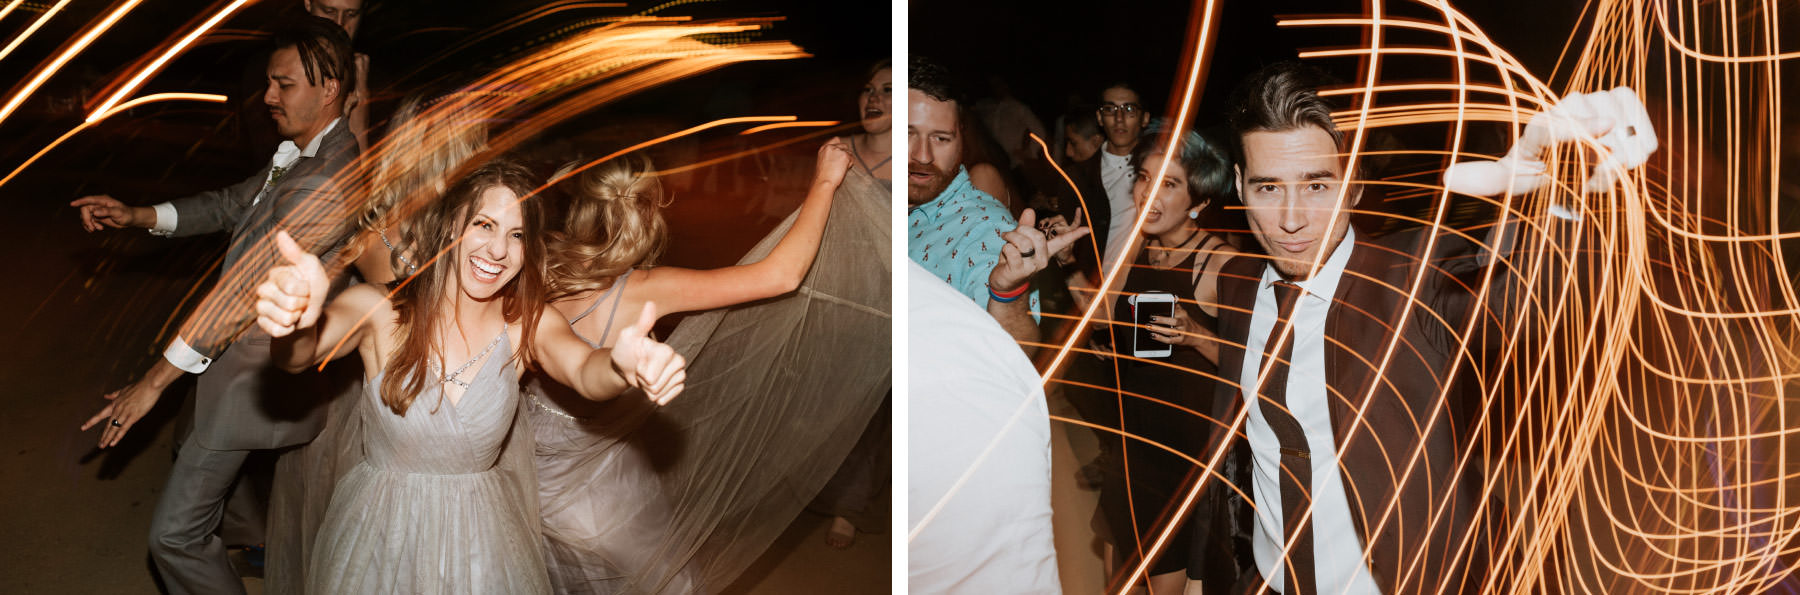 Long shutter drag wedding guests dancing at reception